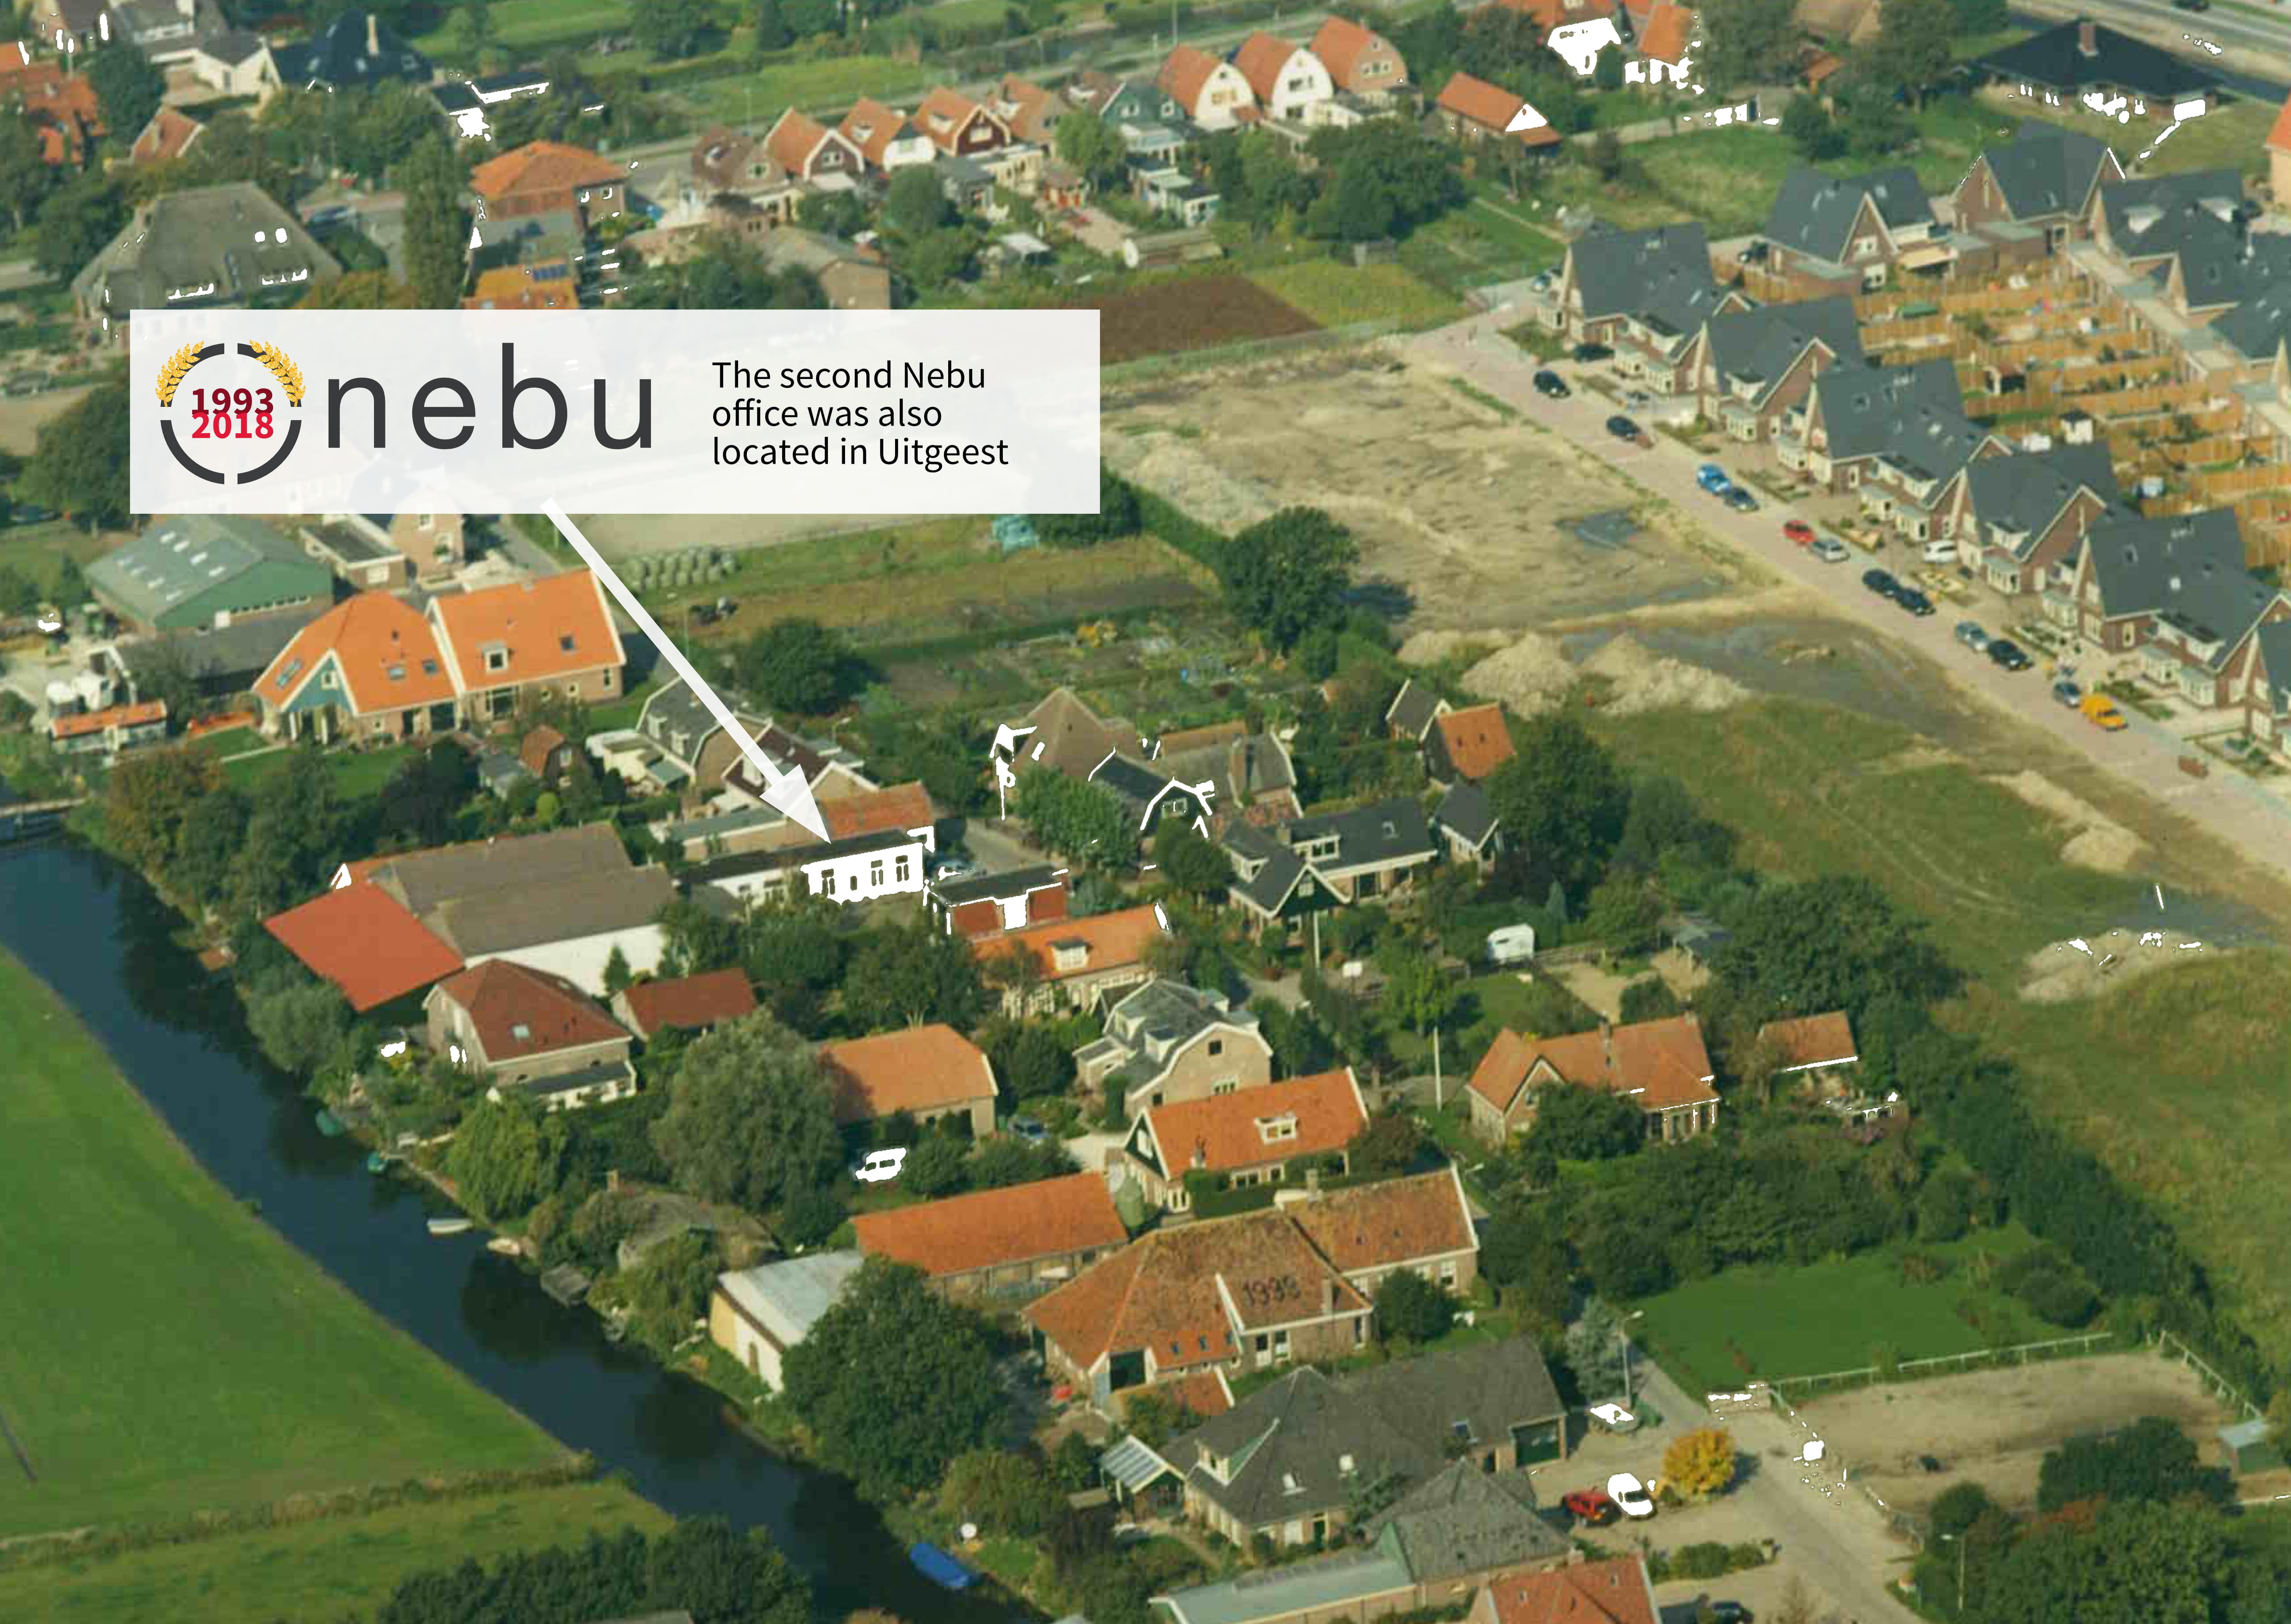 Nebu's second office was also located in Uitgeest